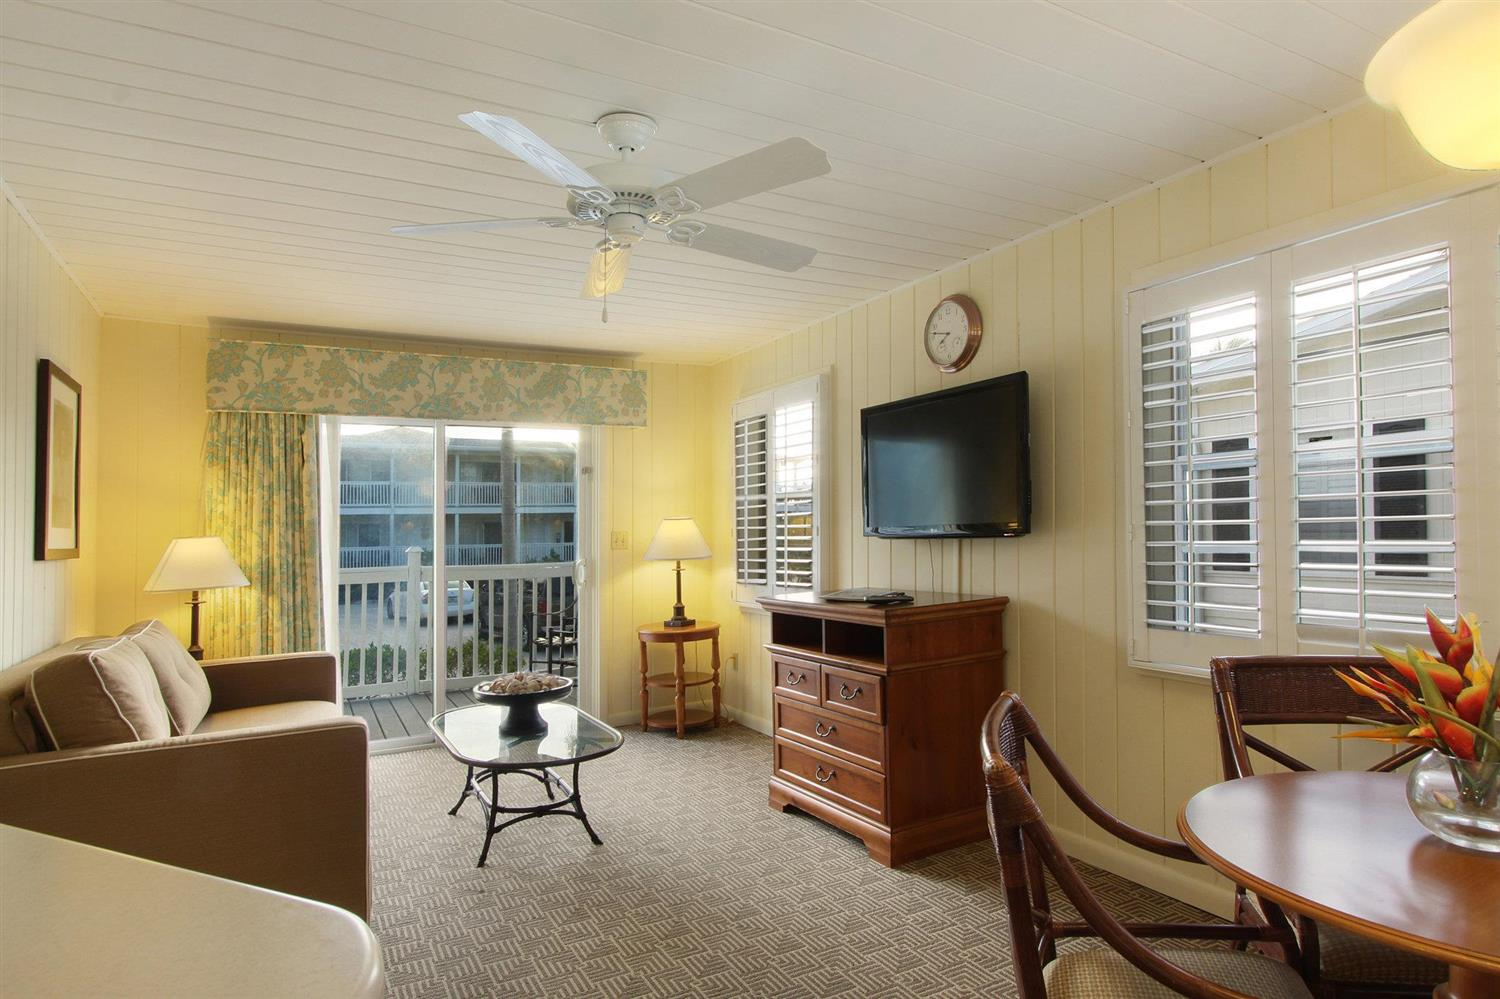 Room - Sanibel's Seaside Inn Sanibel Island